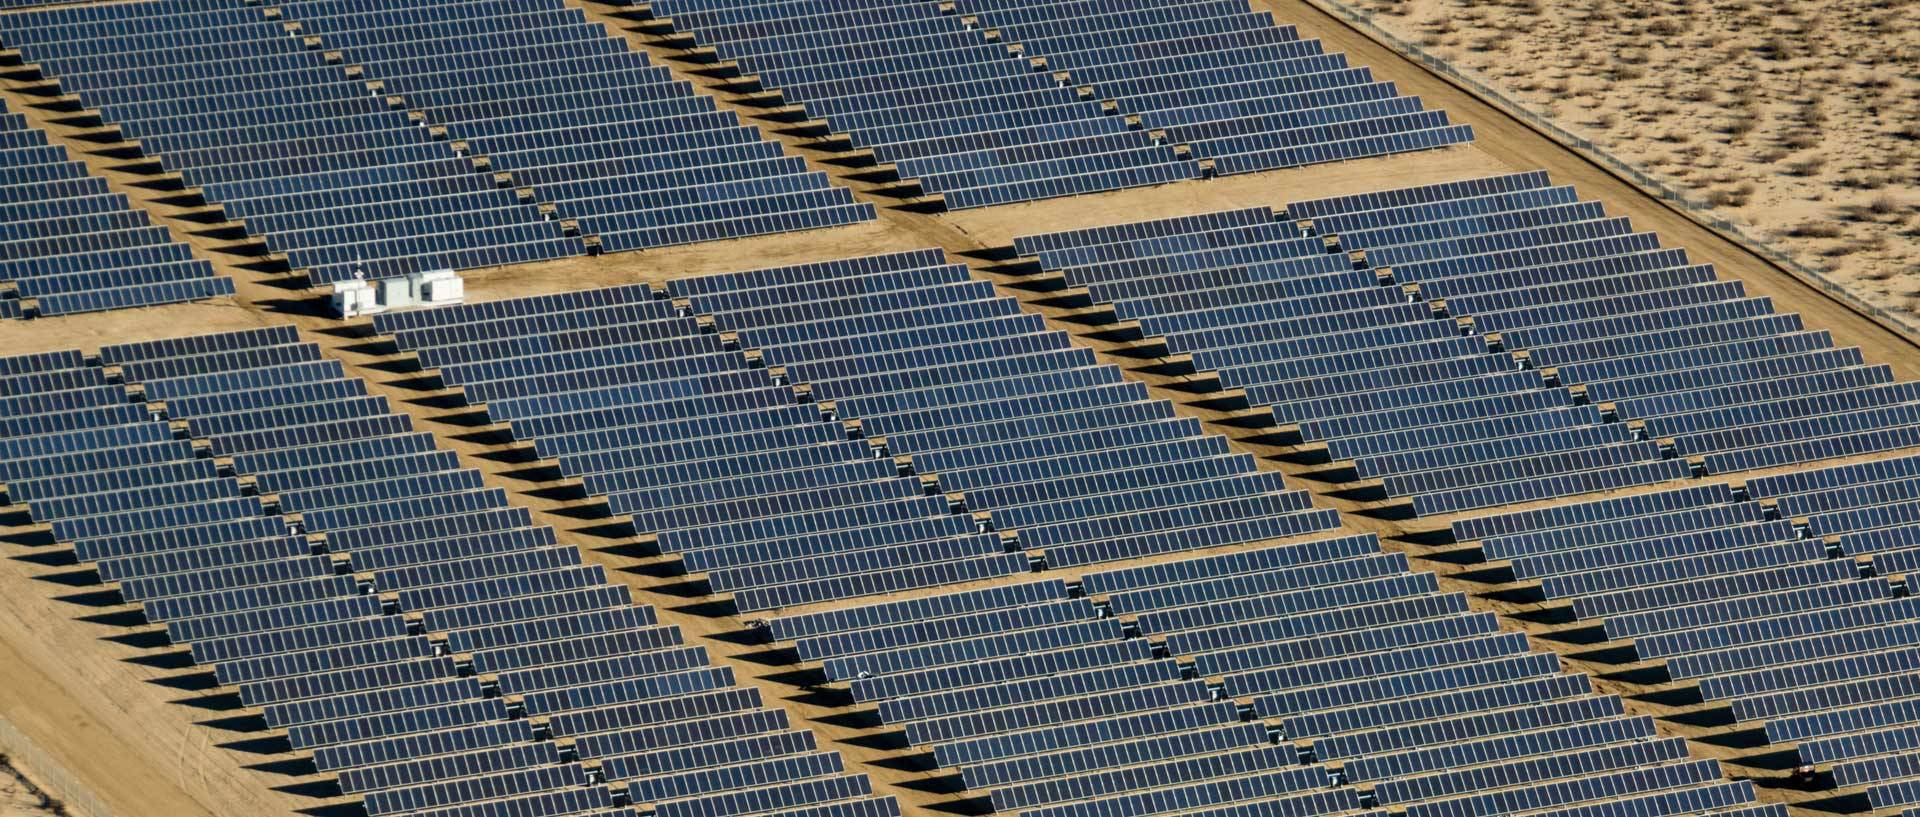 Some solar farms in California are being told to shut down on sunny days.